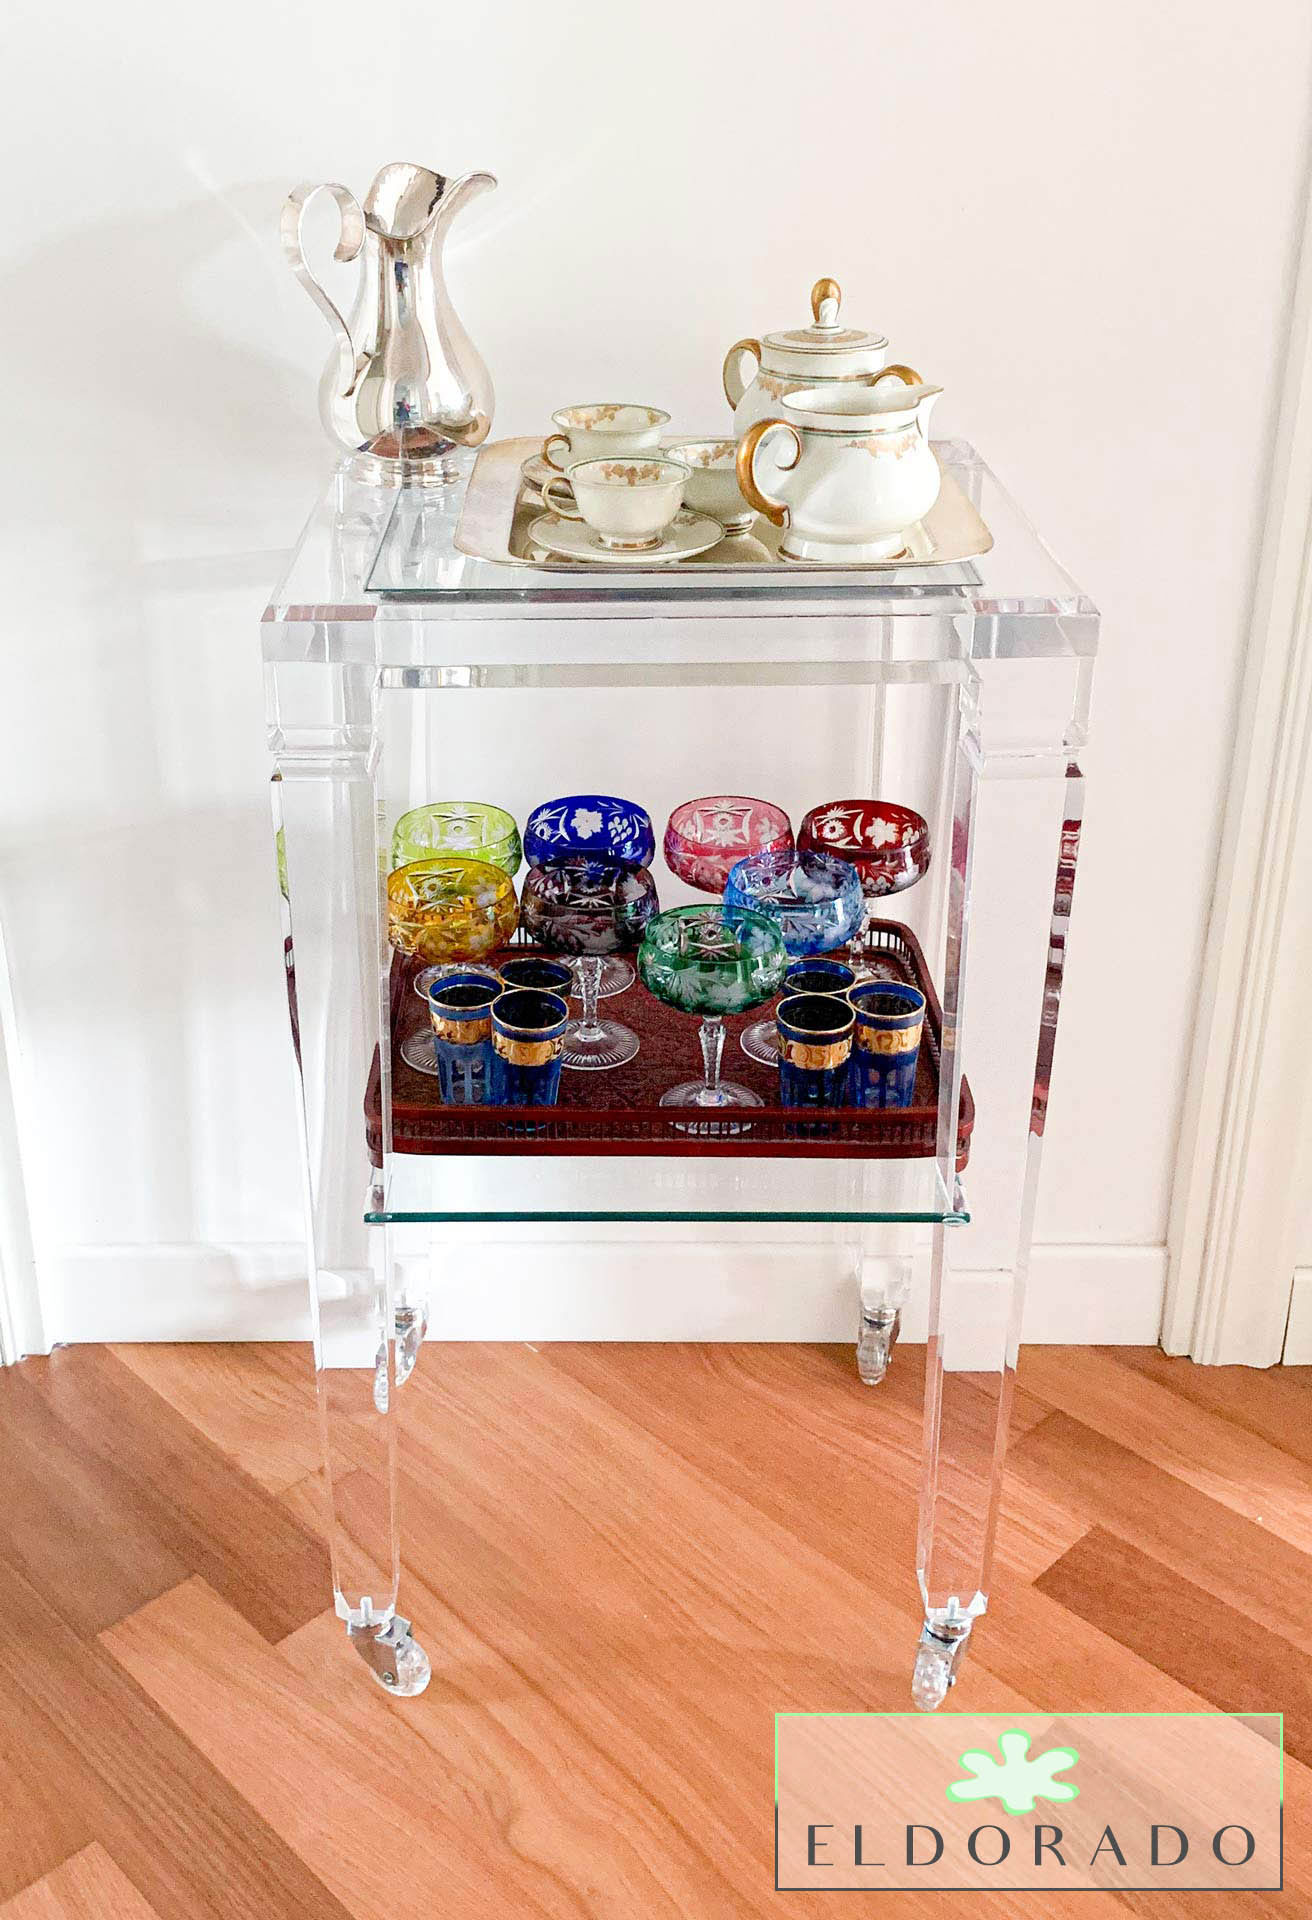 carrelli-modello-lv1-5-acrylic-serving-carts-lv1-jpg